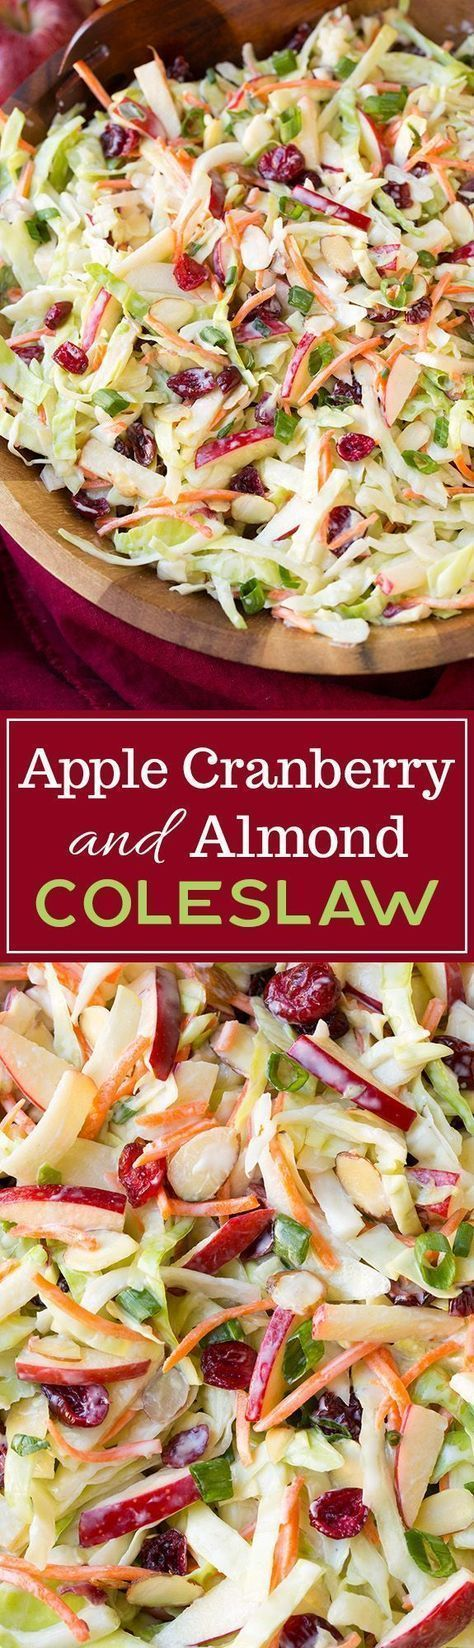 Apple Cranberry Almond Coleslaw - love that it uses mostly Greek yogurt instead of mayo! Easy, healthy, delicious!